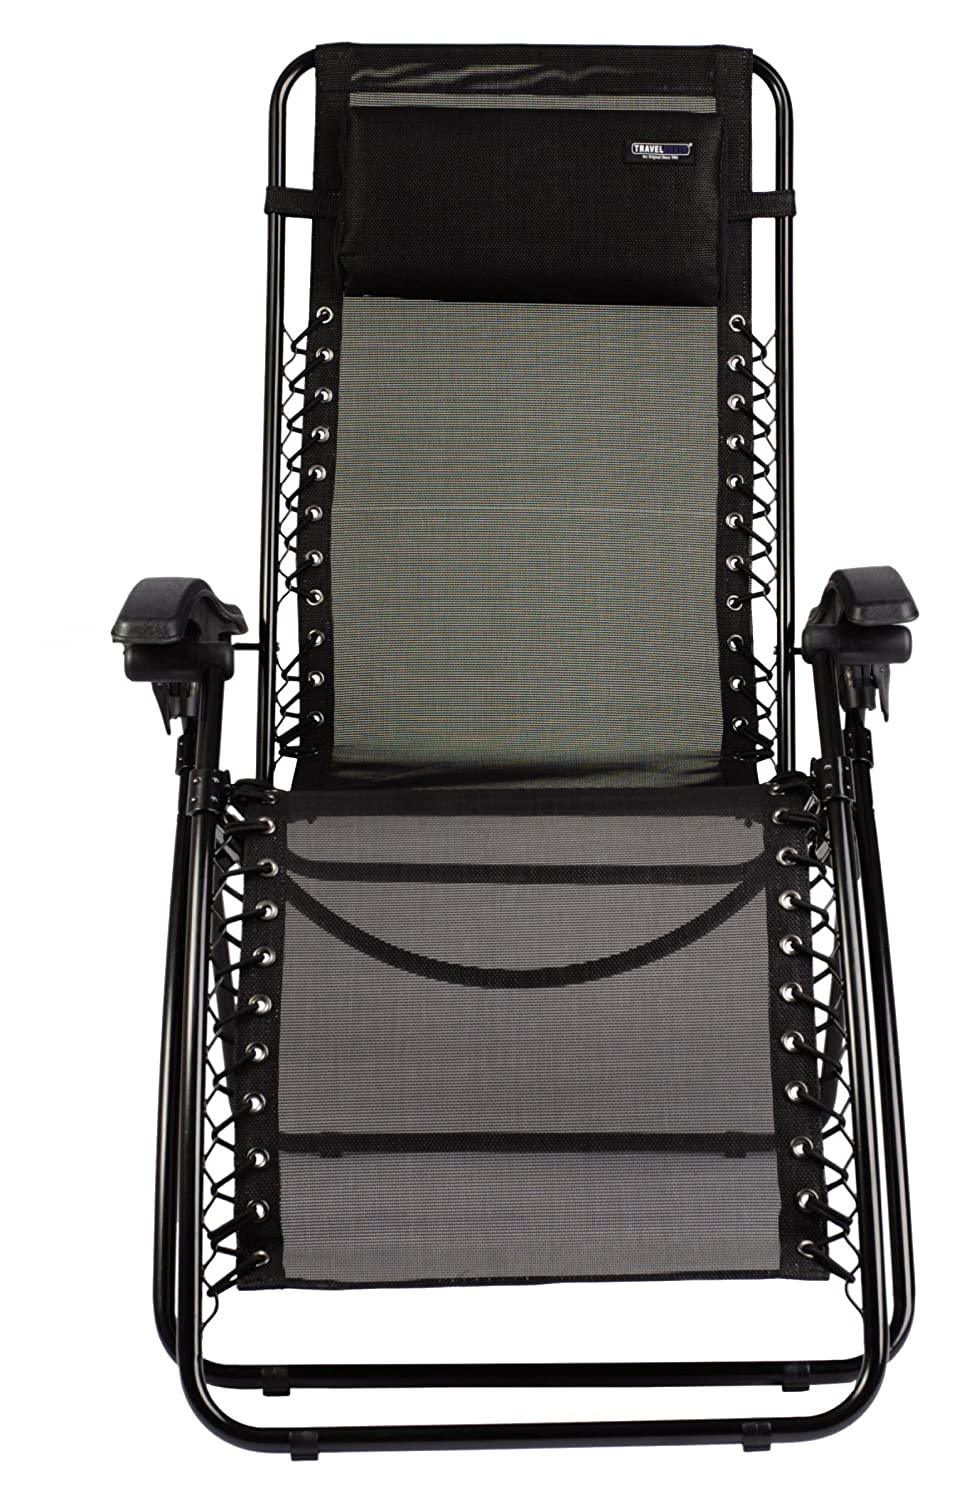 Amazing Travelchair Lounge Lizard Breathable Mesh Outdoor Chaise Chair Cjindustries Chair Design For Home Cjindustriesco